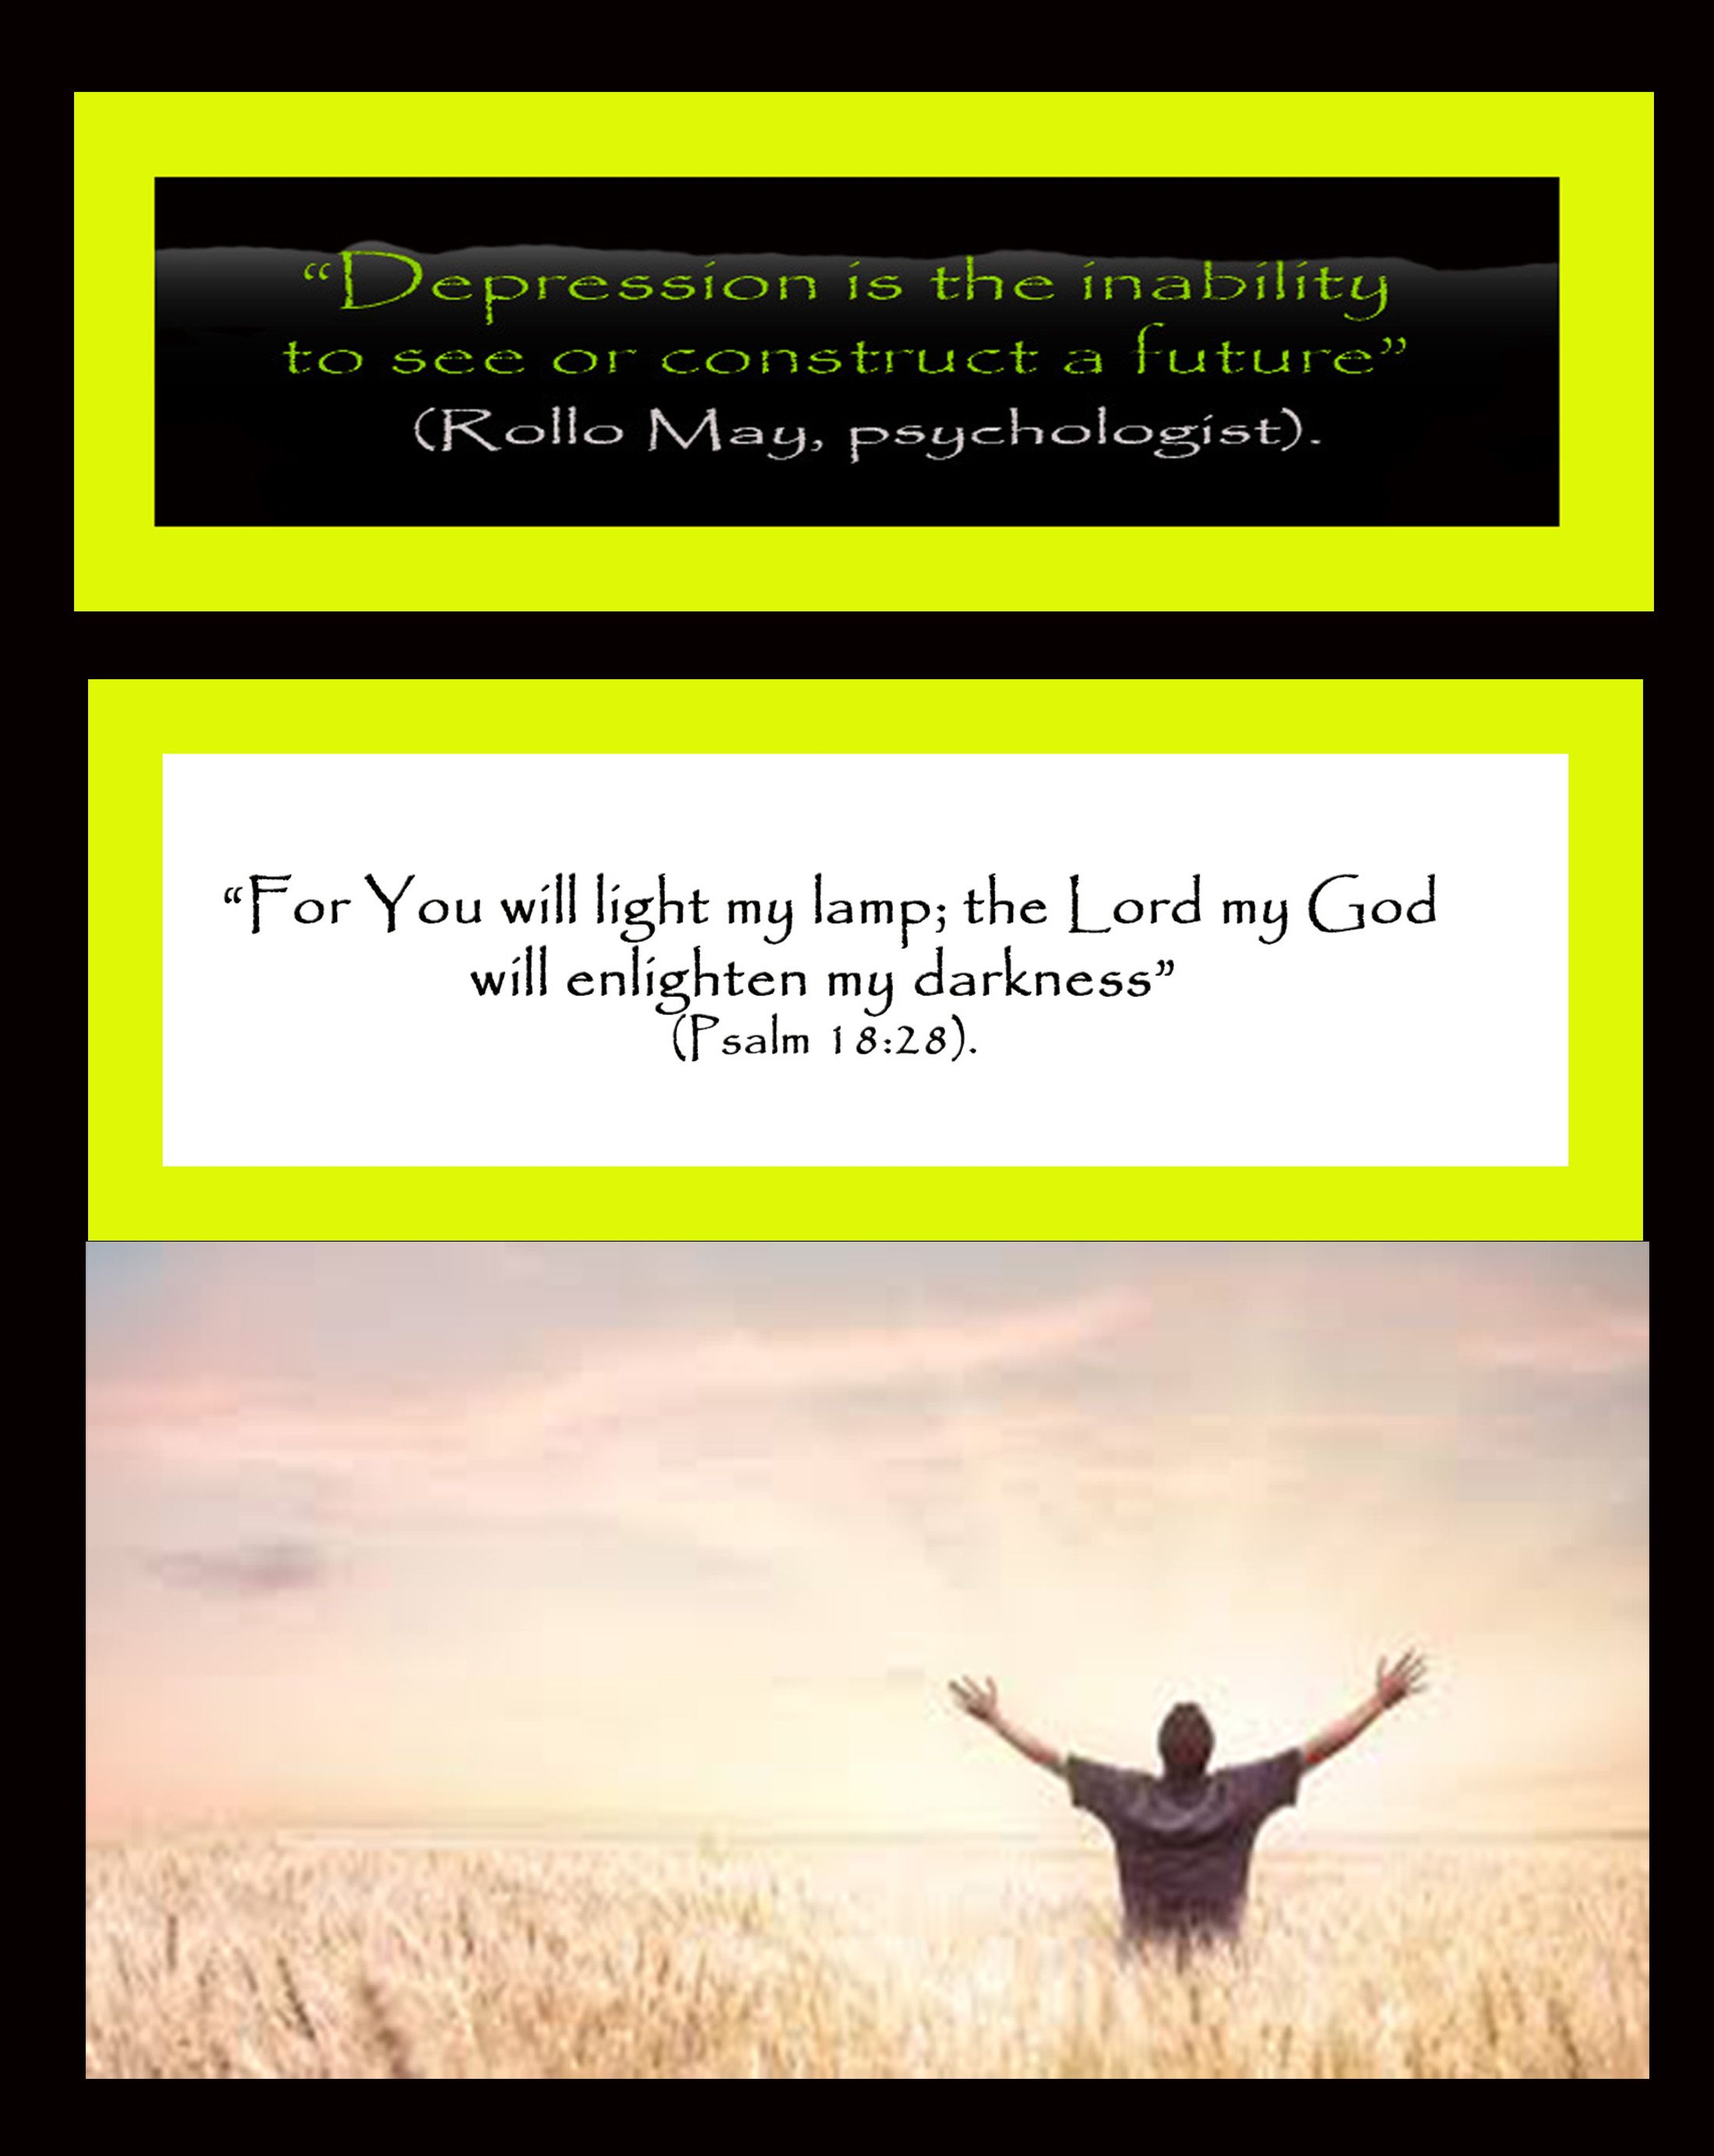 God offers to bring His Light to our darkness.